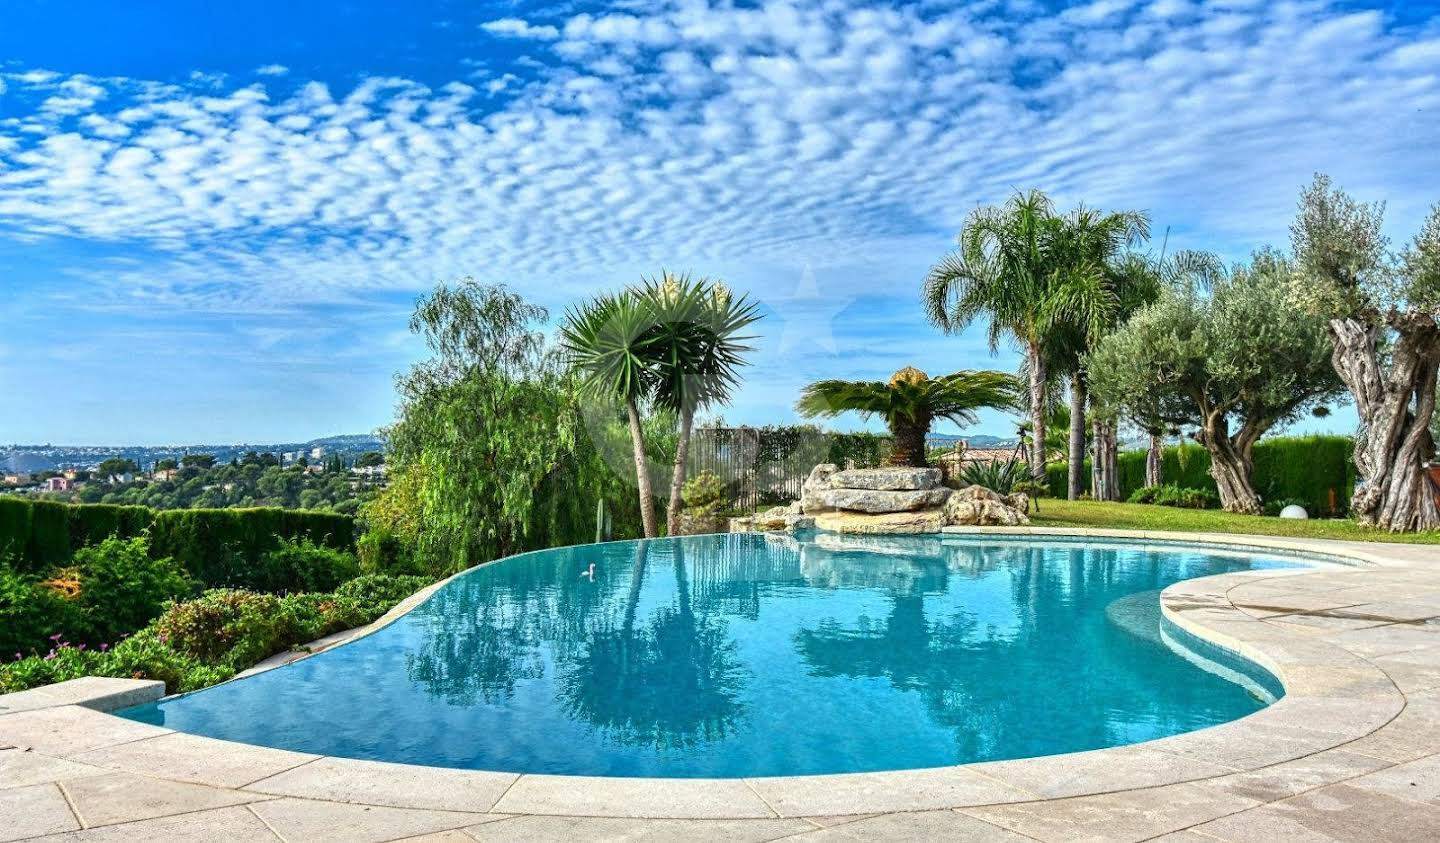 House with pool Cagnes-sur-Mer